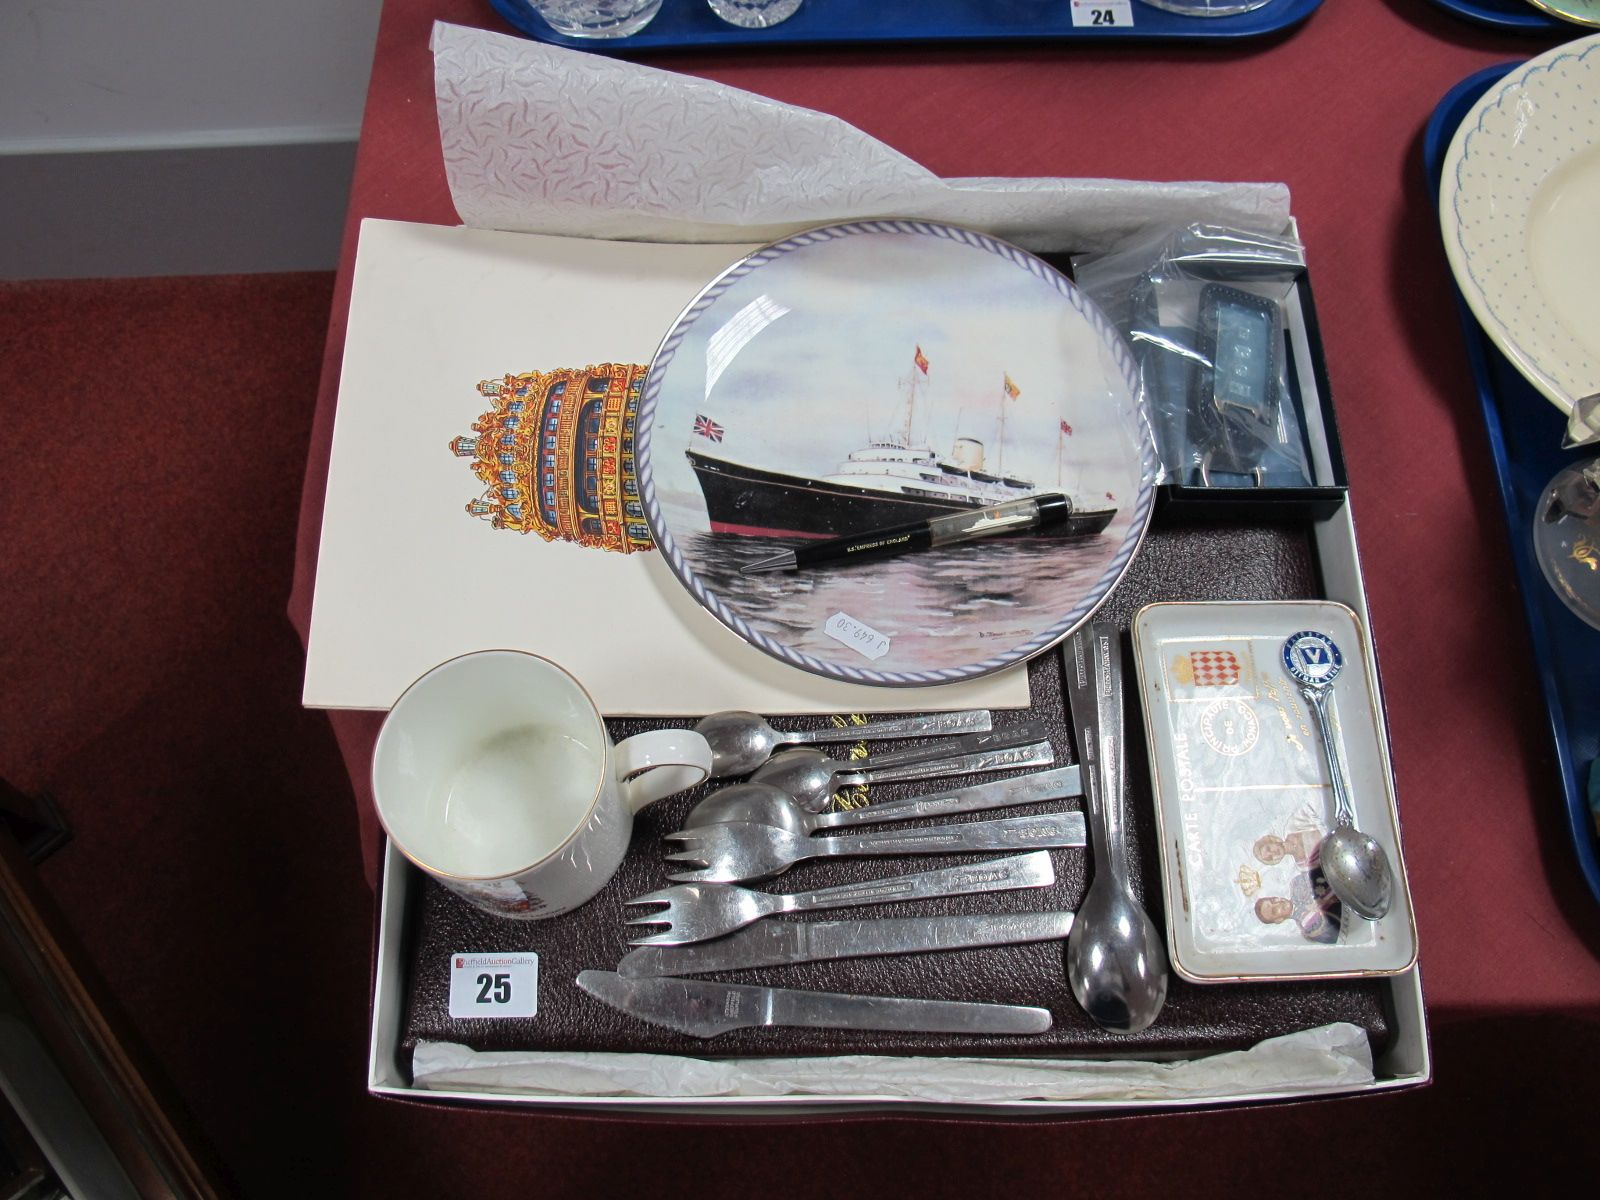 Lot 25 - A Small Collection of B.O.A.C. Stamped Stainless Steel Cutlery by Atkinsons and Arthur Price